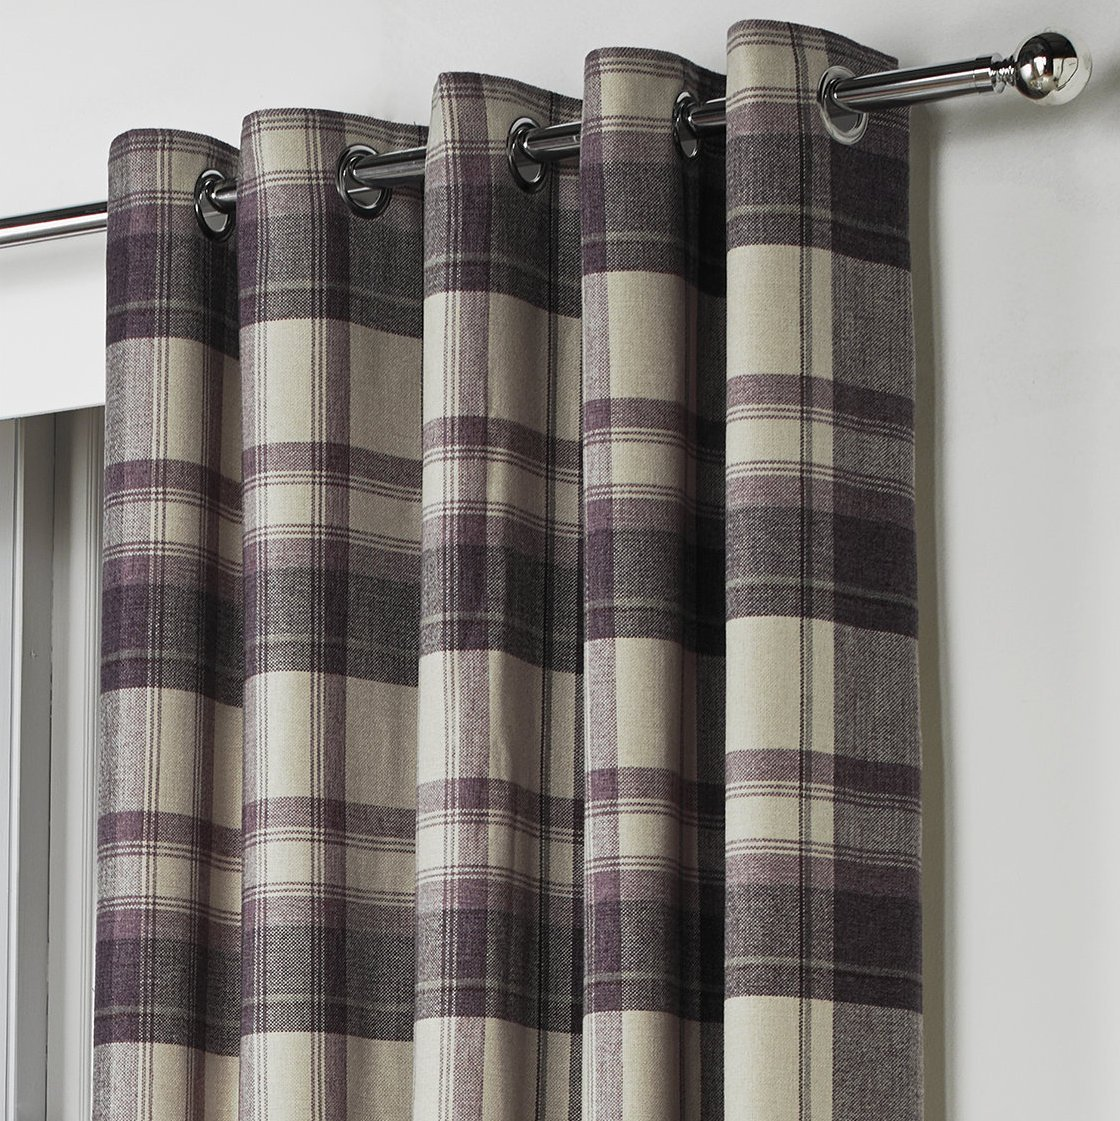 One Pair Of Belvedere Eyelet Header Curtains In Plum Size 66x90 168 X 229 Cm Width Drop Amazoncouk Kitchen Home